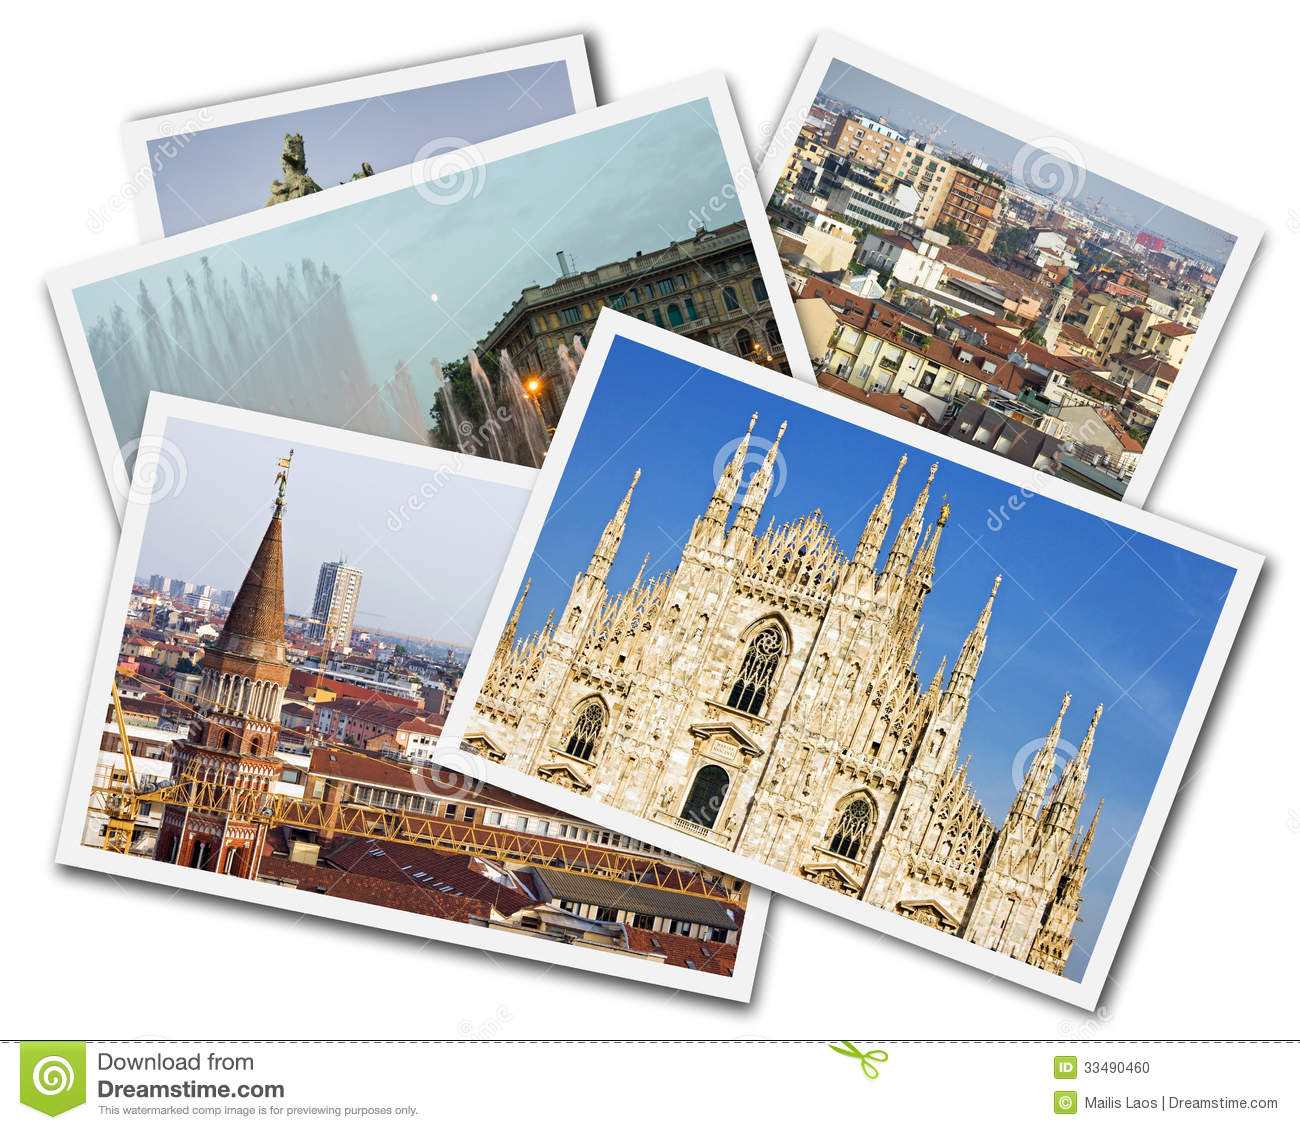 Download Milan Collage stock photo. Image of cityscape, postcards - 33490460